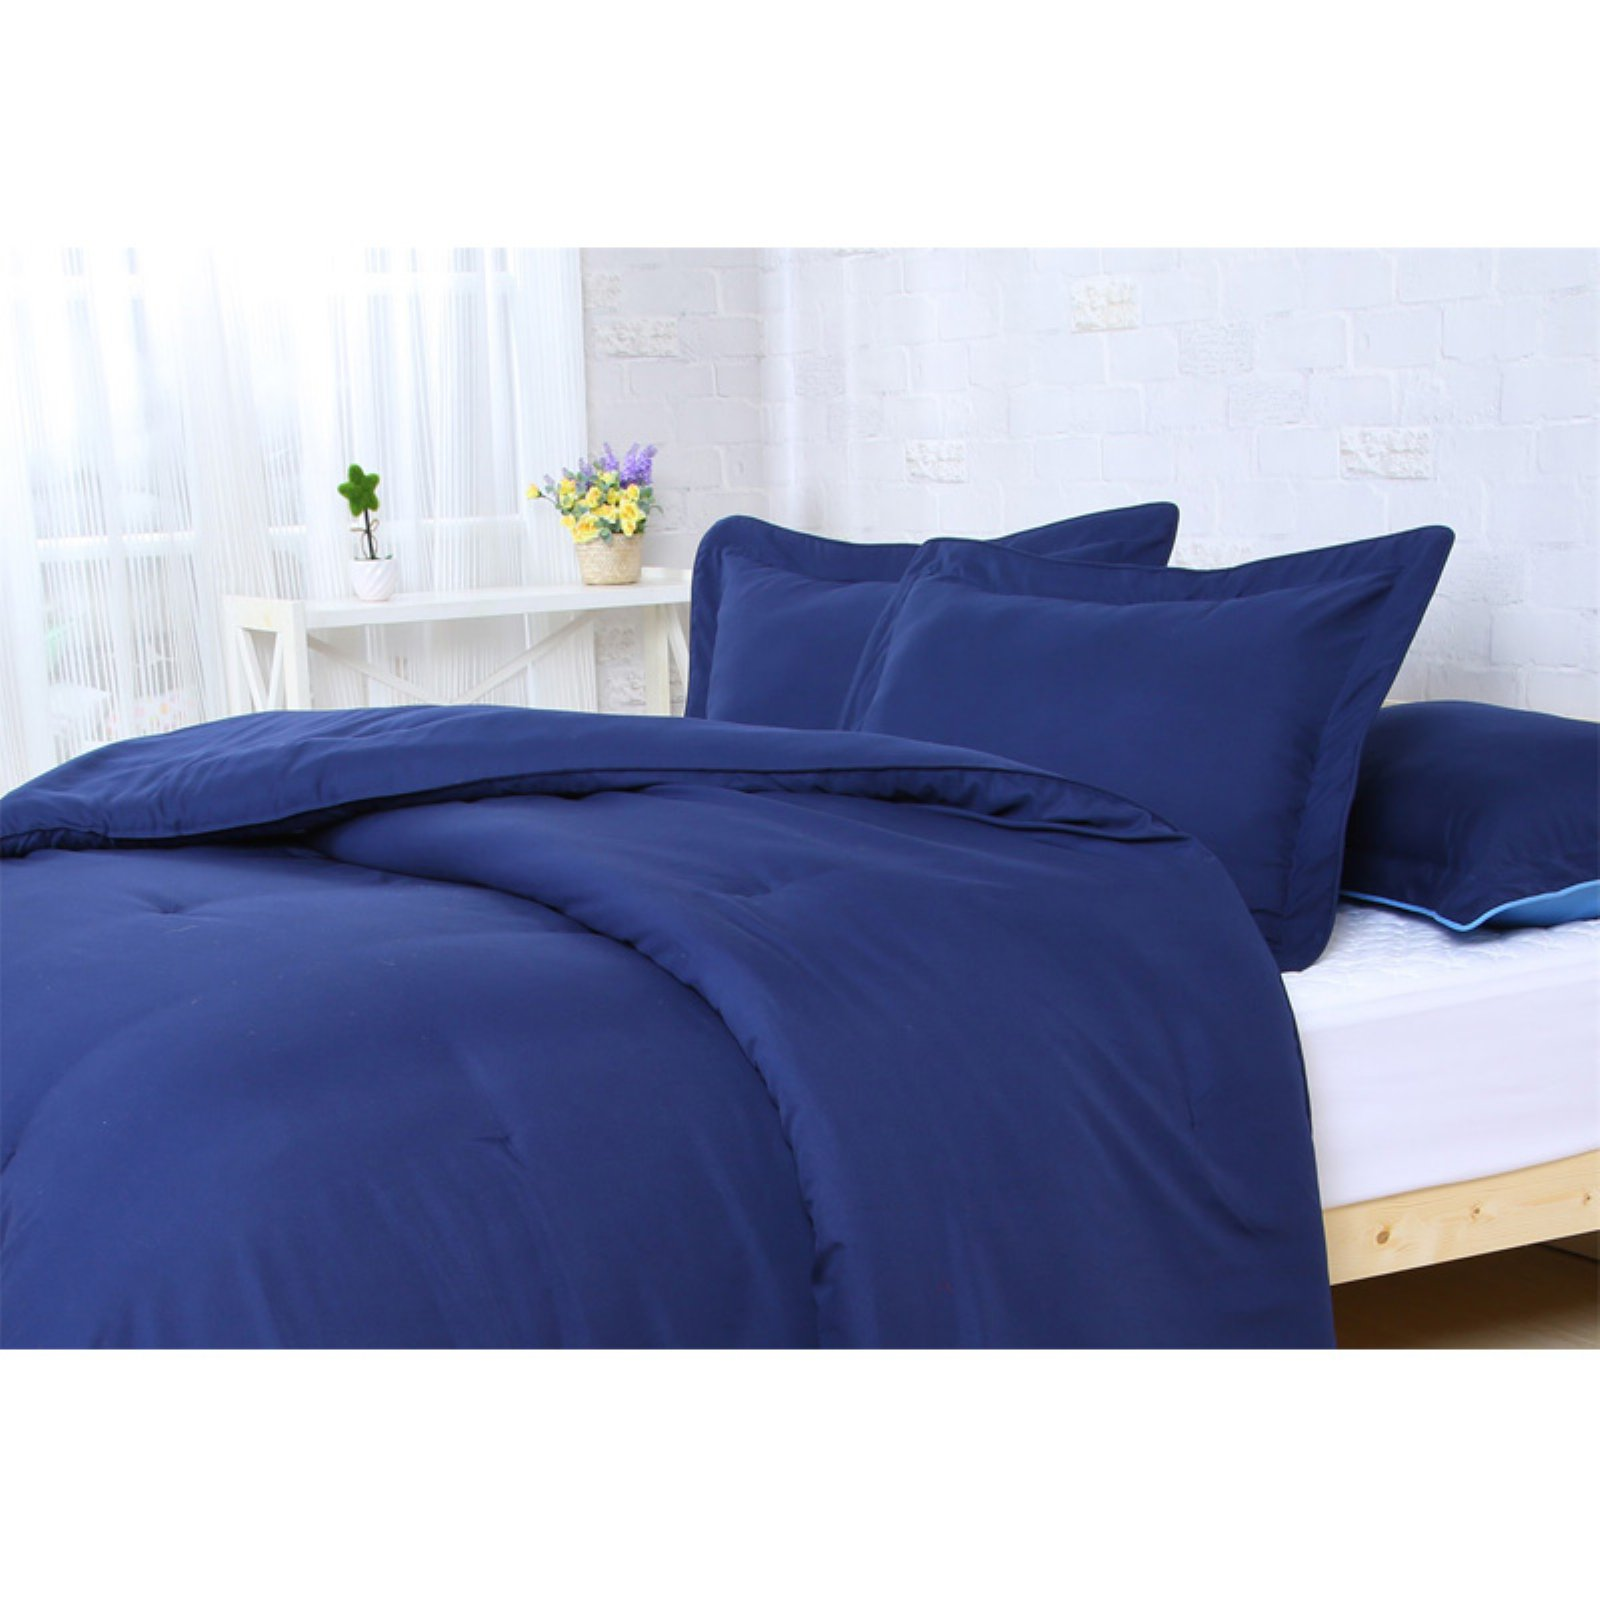 Microfiber Comforter Set by Affluence